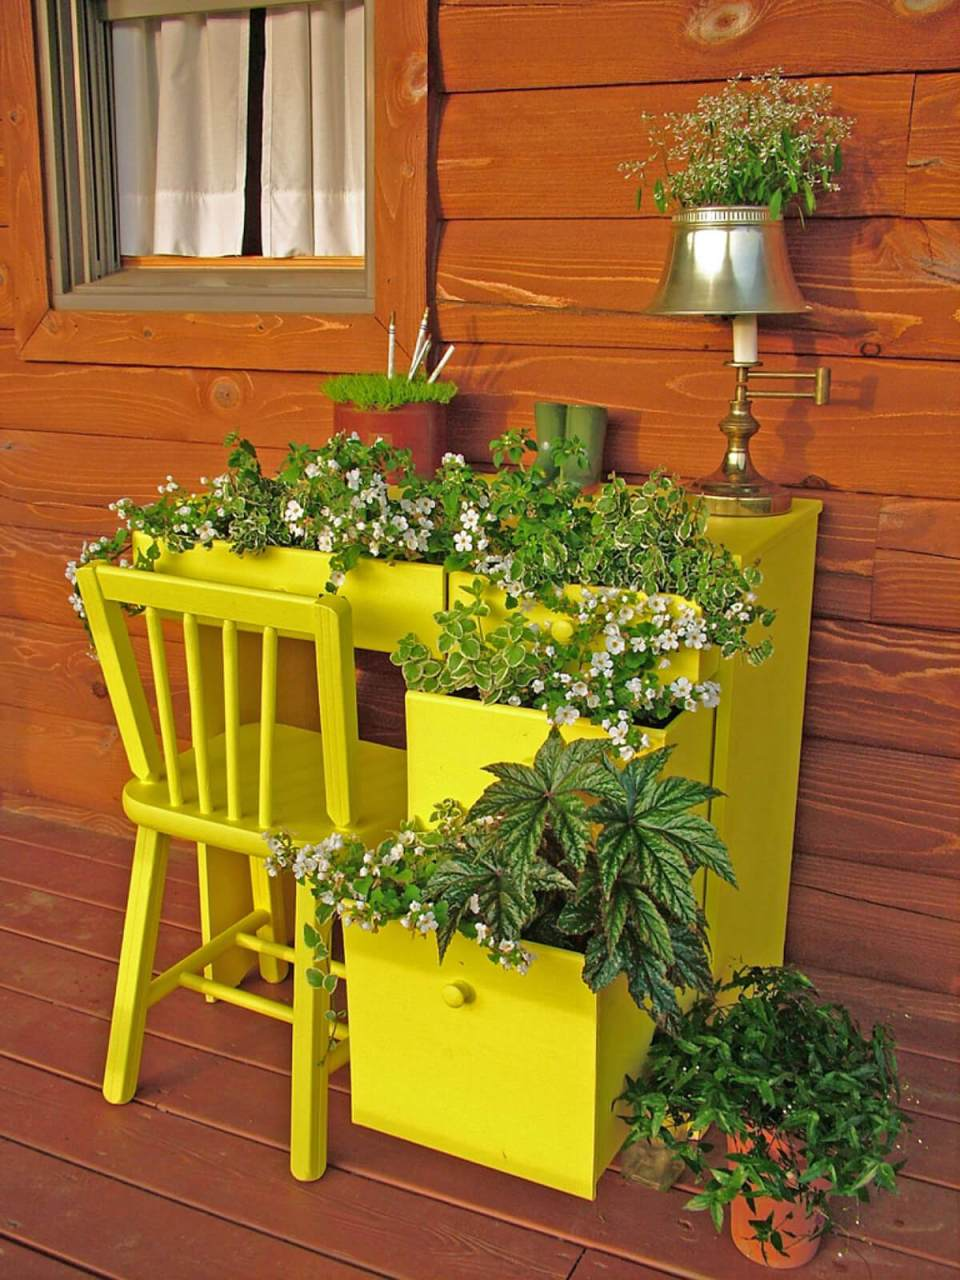 Upcycled Desk Garden Container for Your Porch